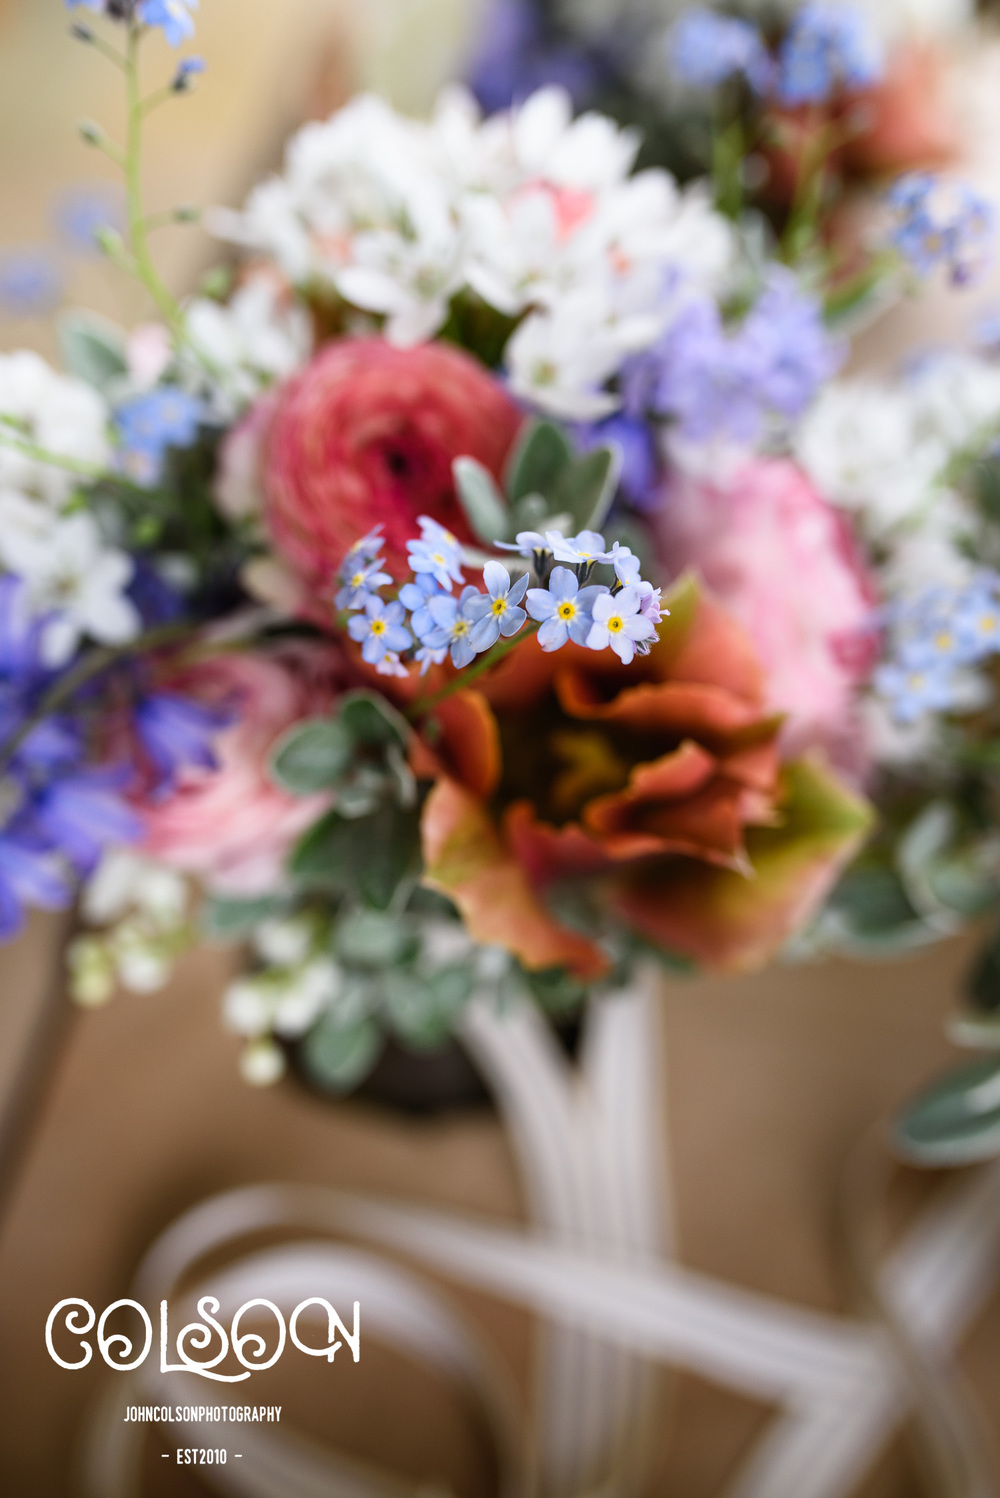 Beautiful wedding flowers at a Leicestershire wedding.